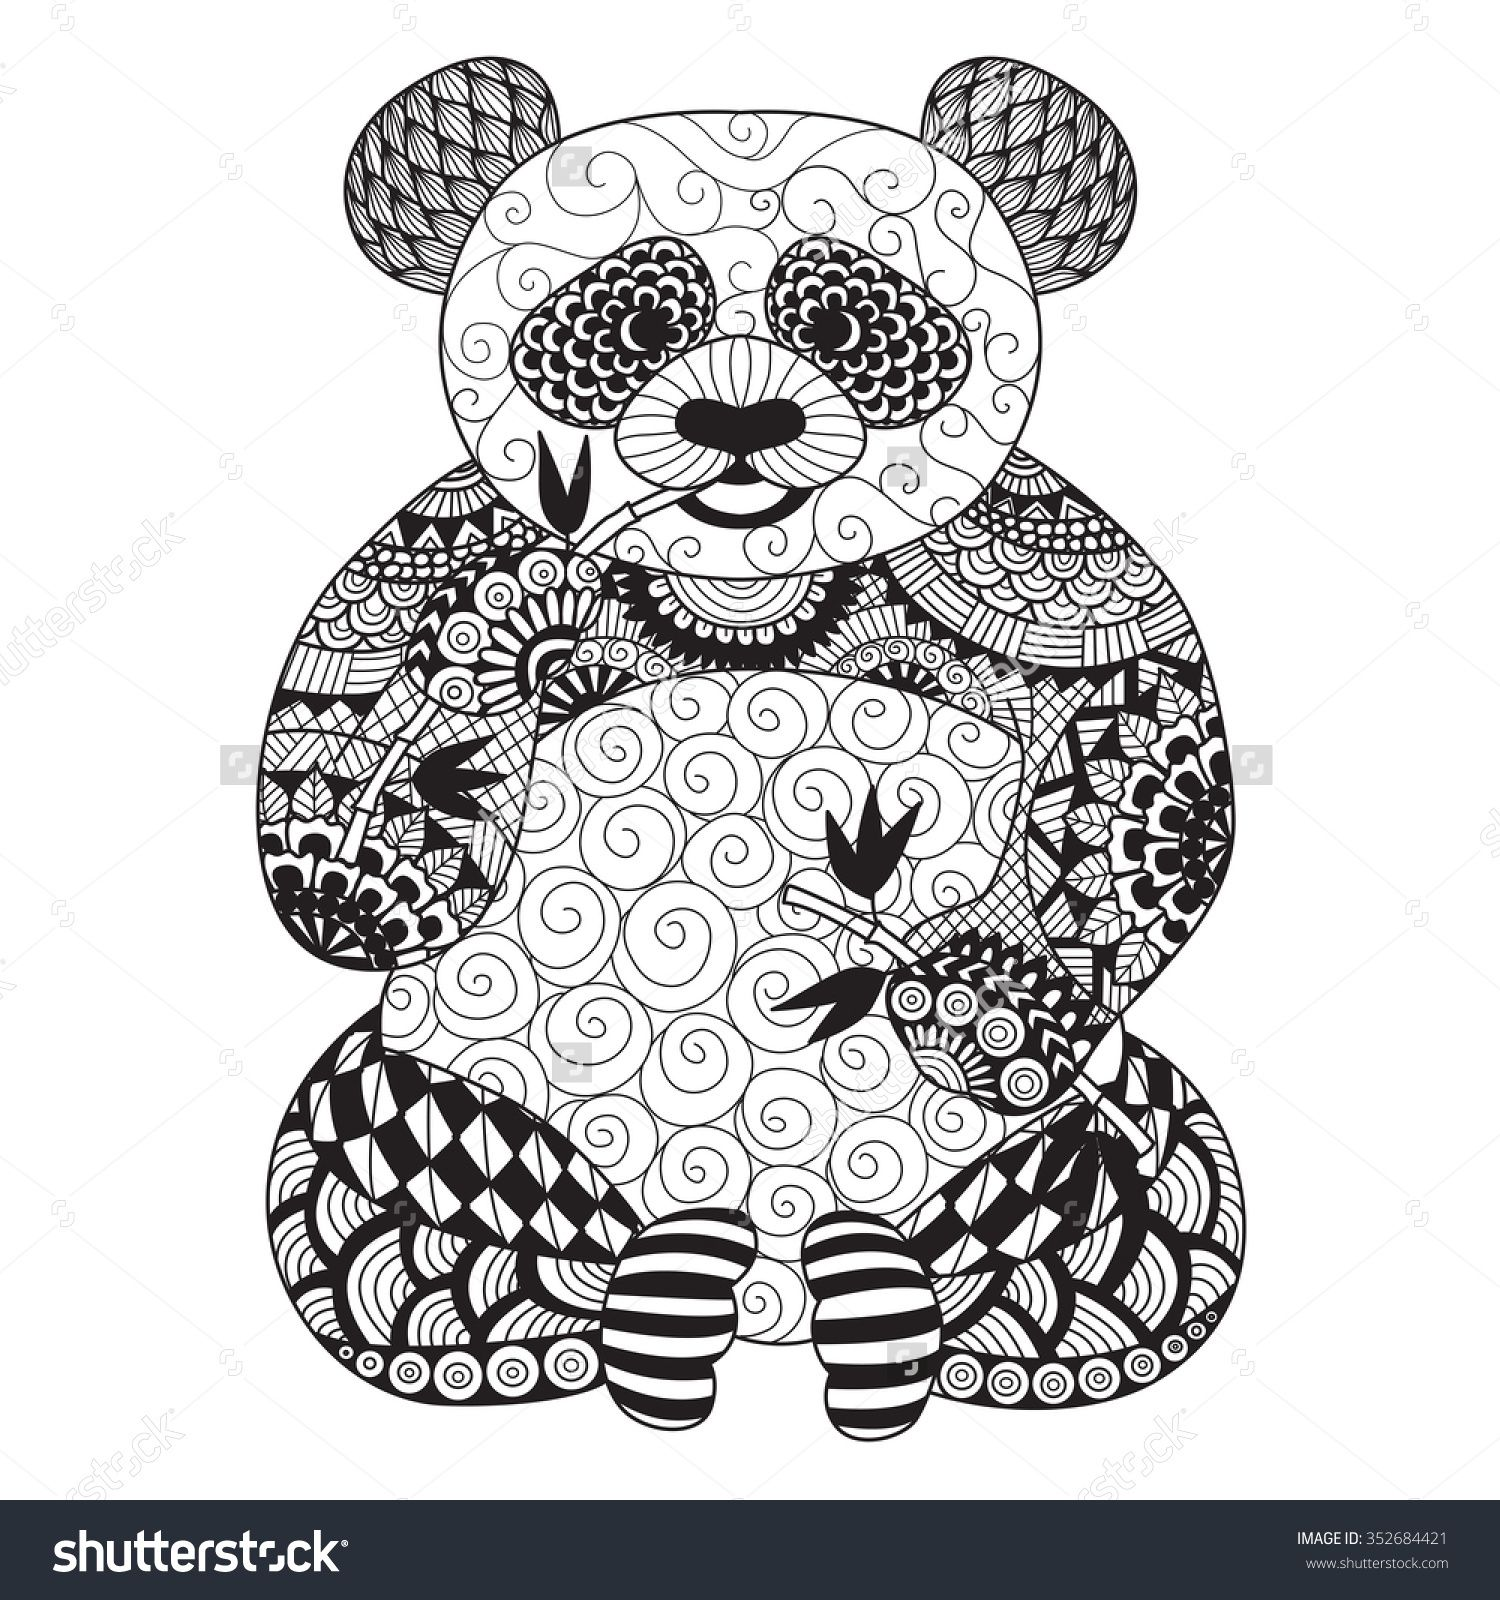 280e98385935a Hand Drawn Zentangle Panda For Coloring Book For Adult,Tattoo ...